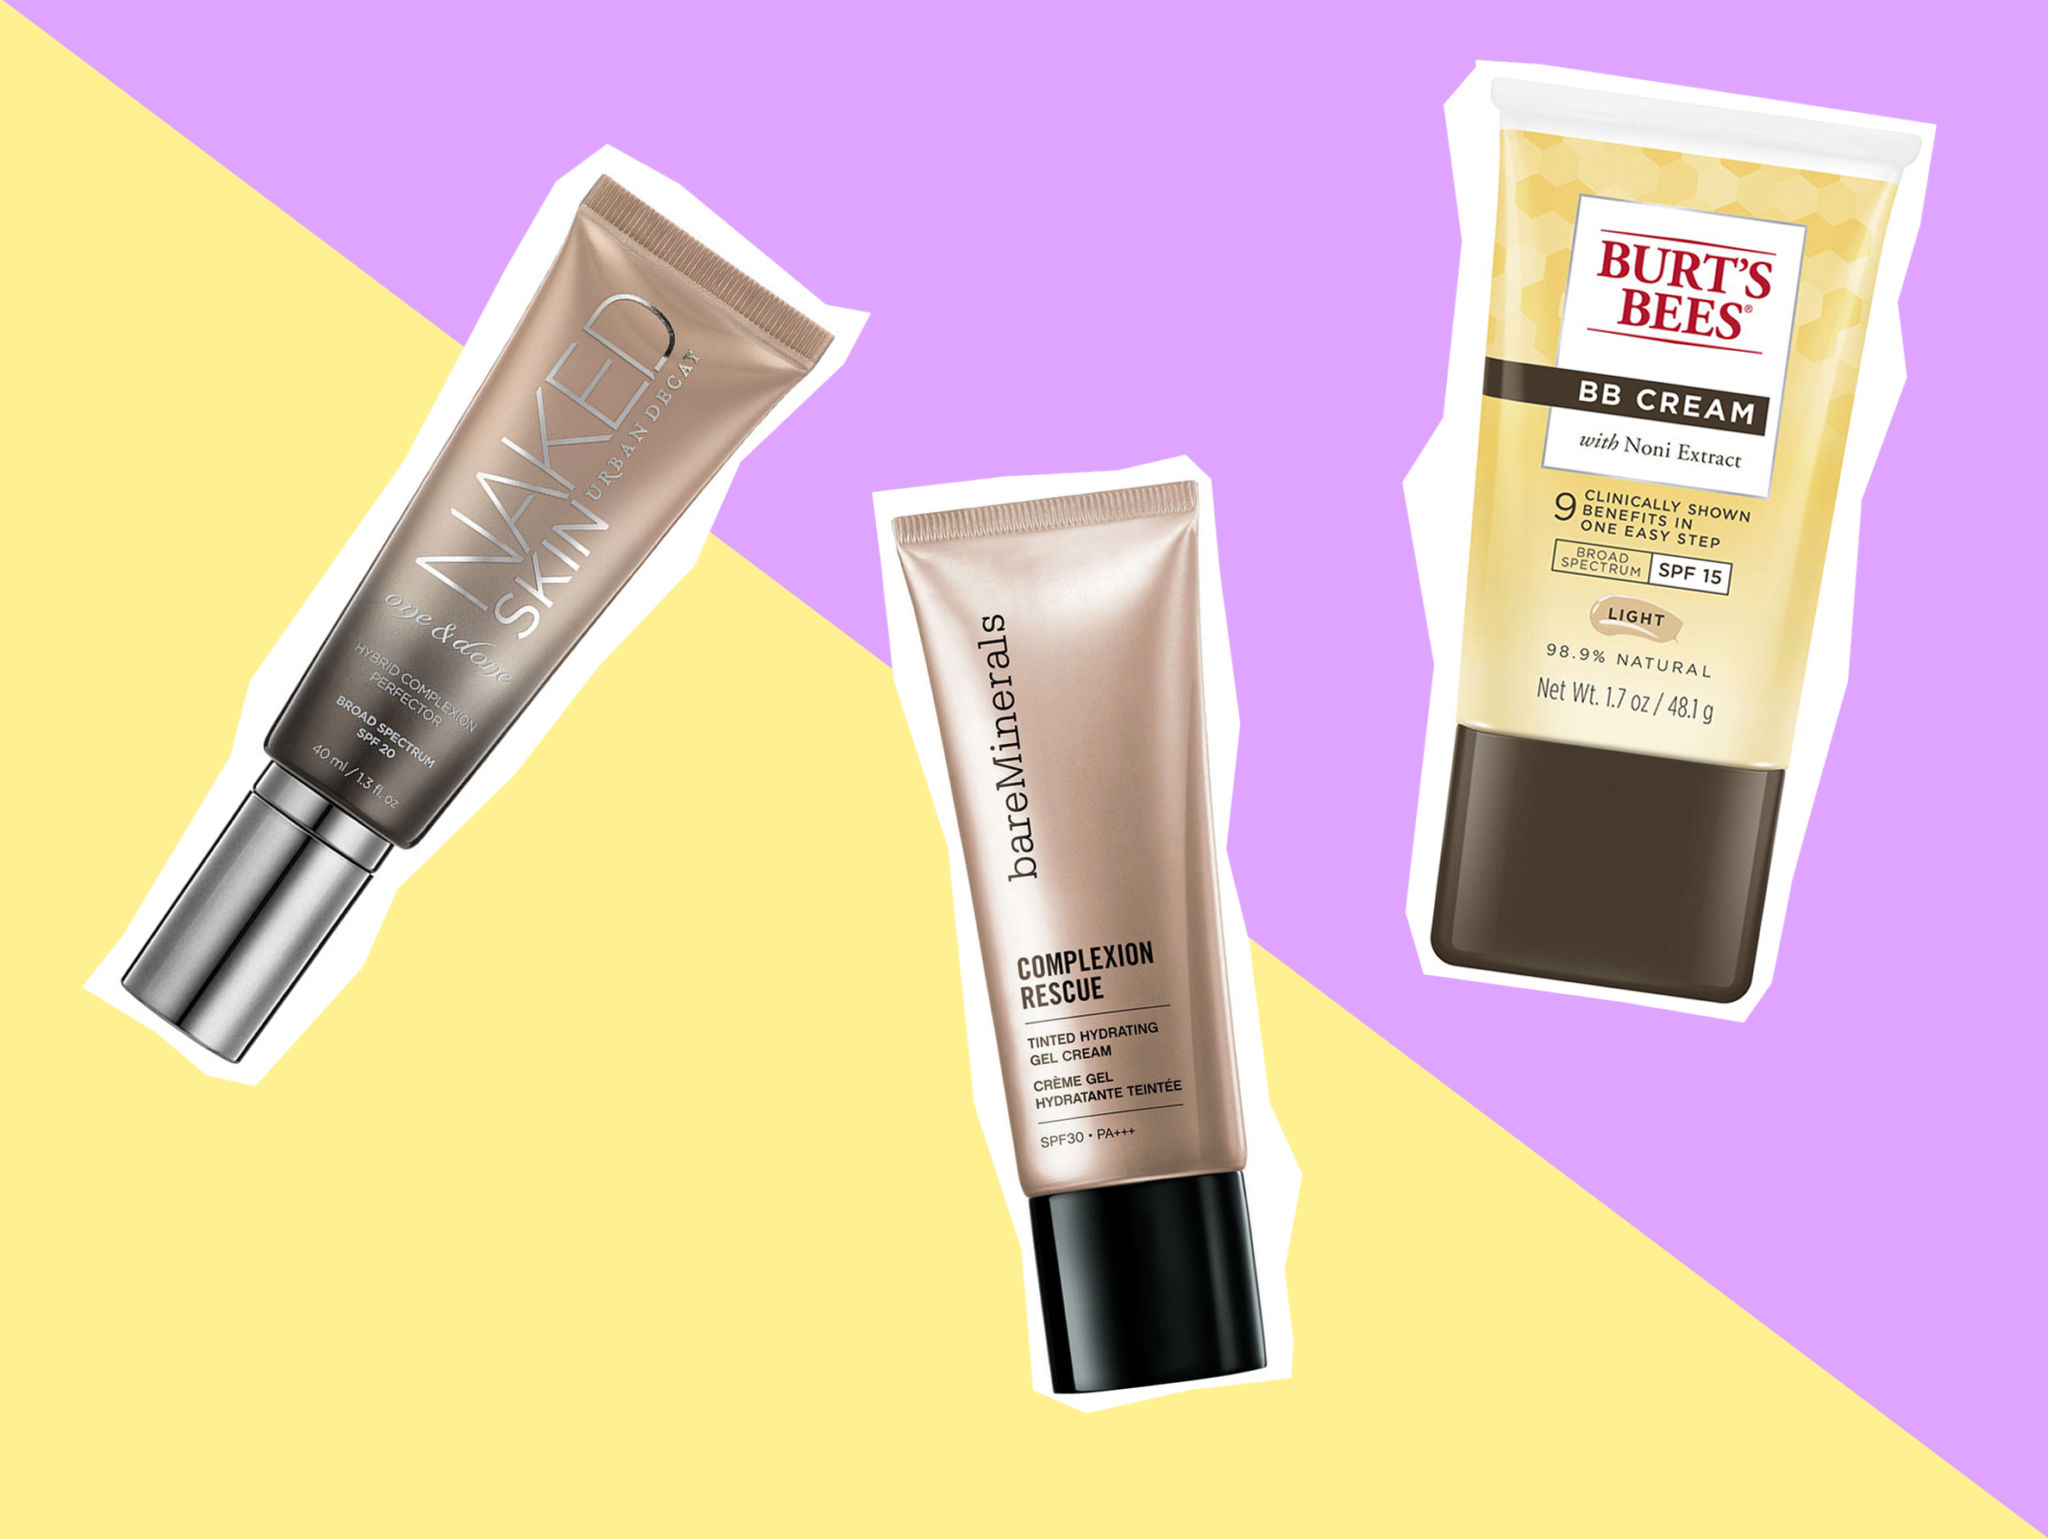 On pic: Urban Decay Naked Skin All in One, Bare Minerals Complexion Rescue,  Burt's Bee BB Cream.